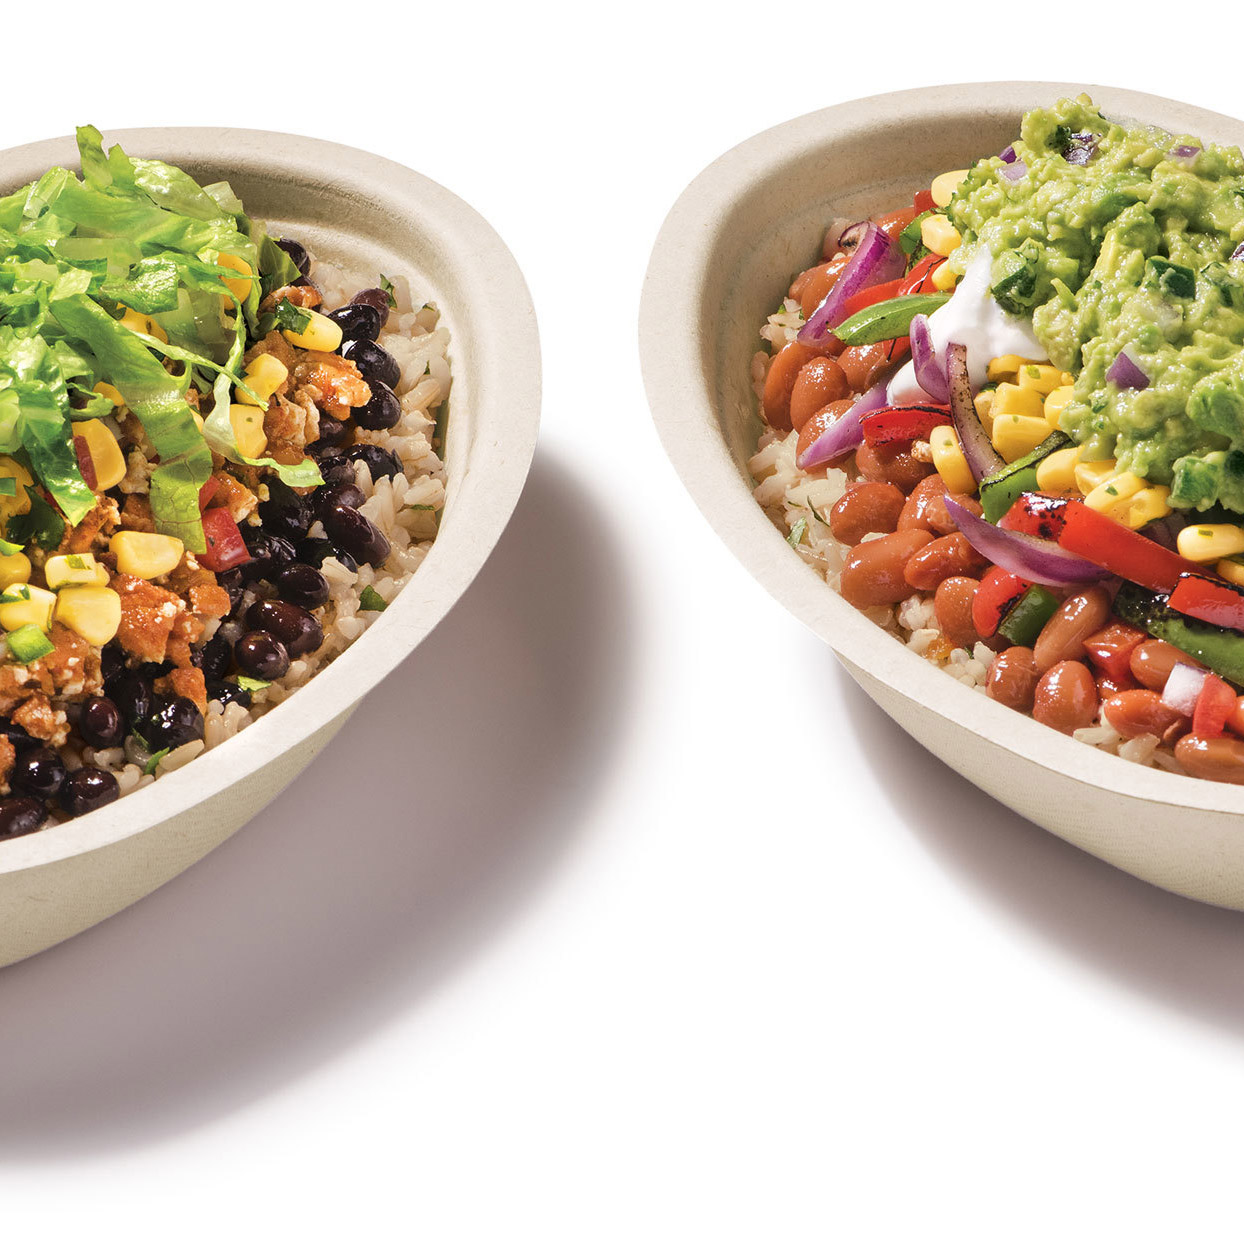 Chipotle Will Reward You for Eating Meatless This Month